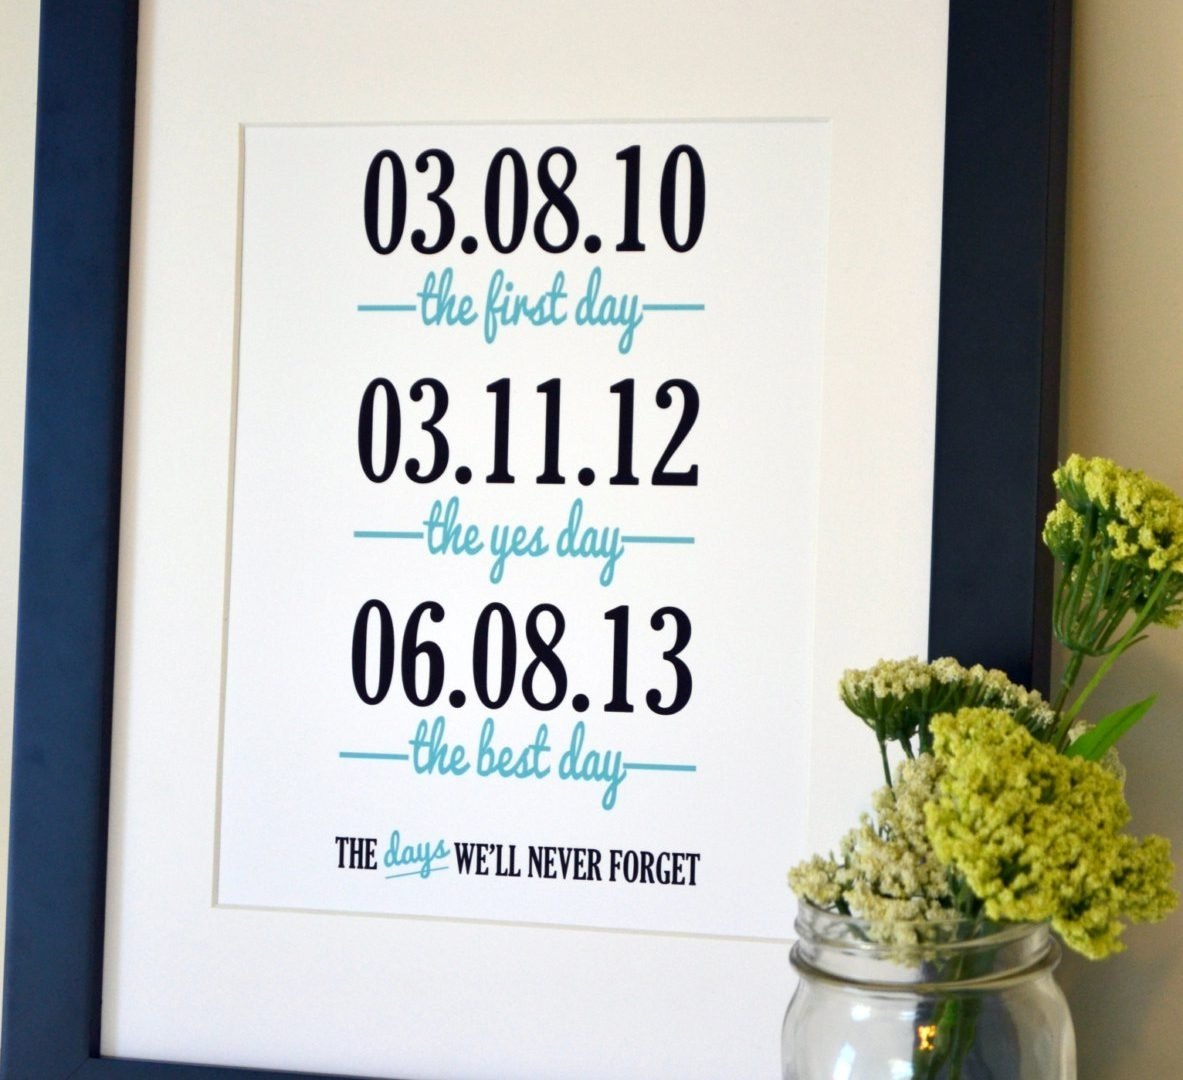 10 Cute Anniversary Gifts For Him Ideas creative firstdding anniversary gifts for him ideas year presents 2020